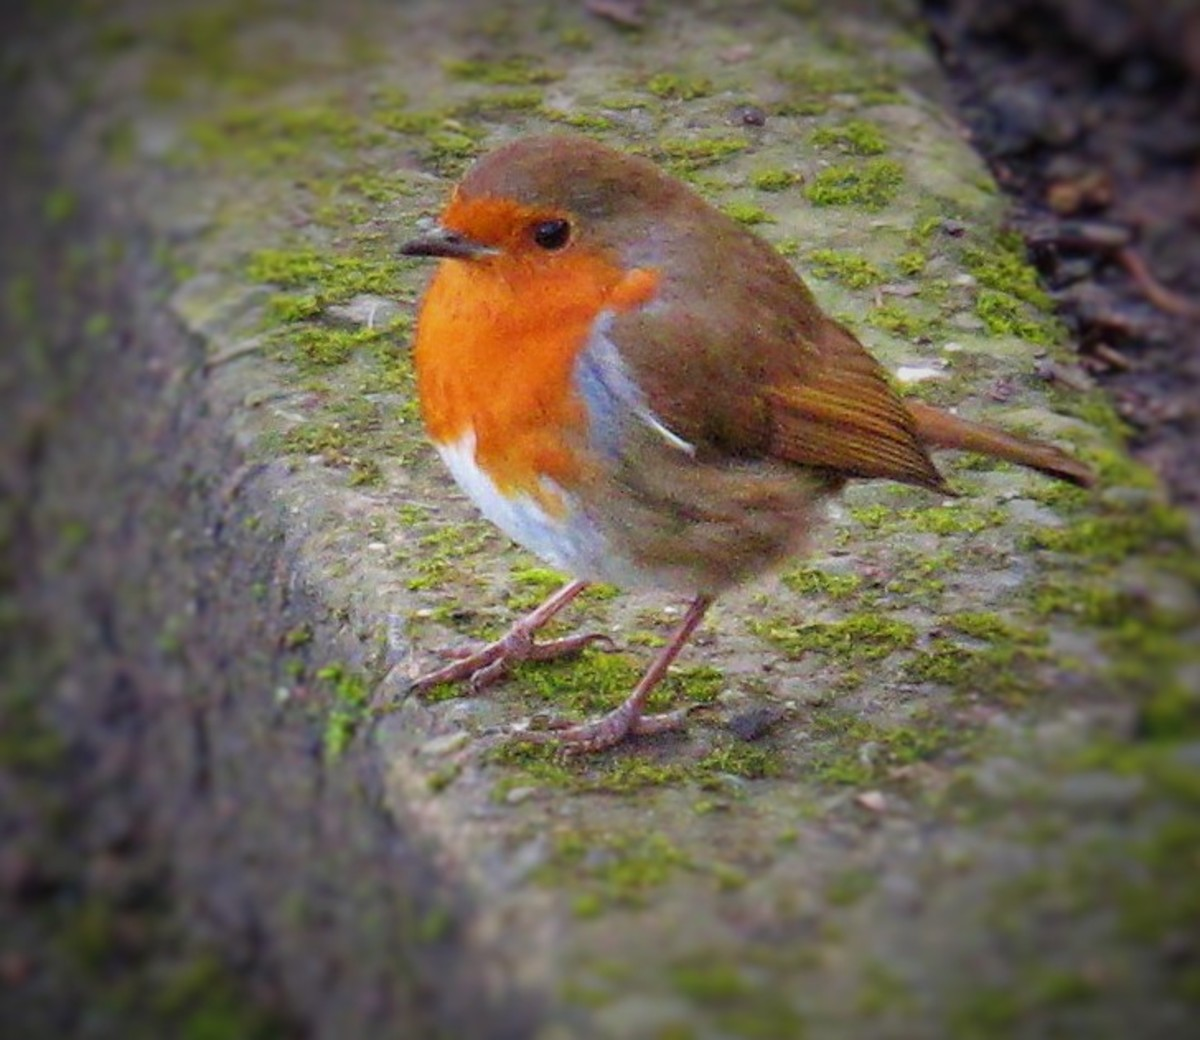 As you can see, this robin's breast is clearly orange!